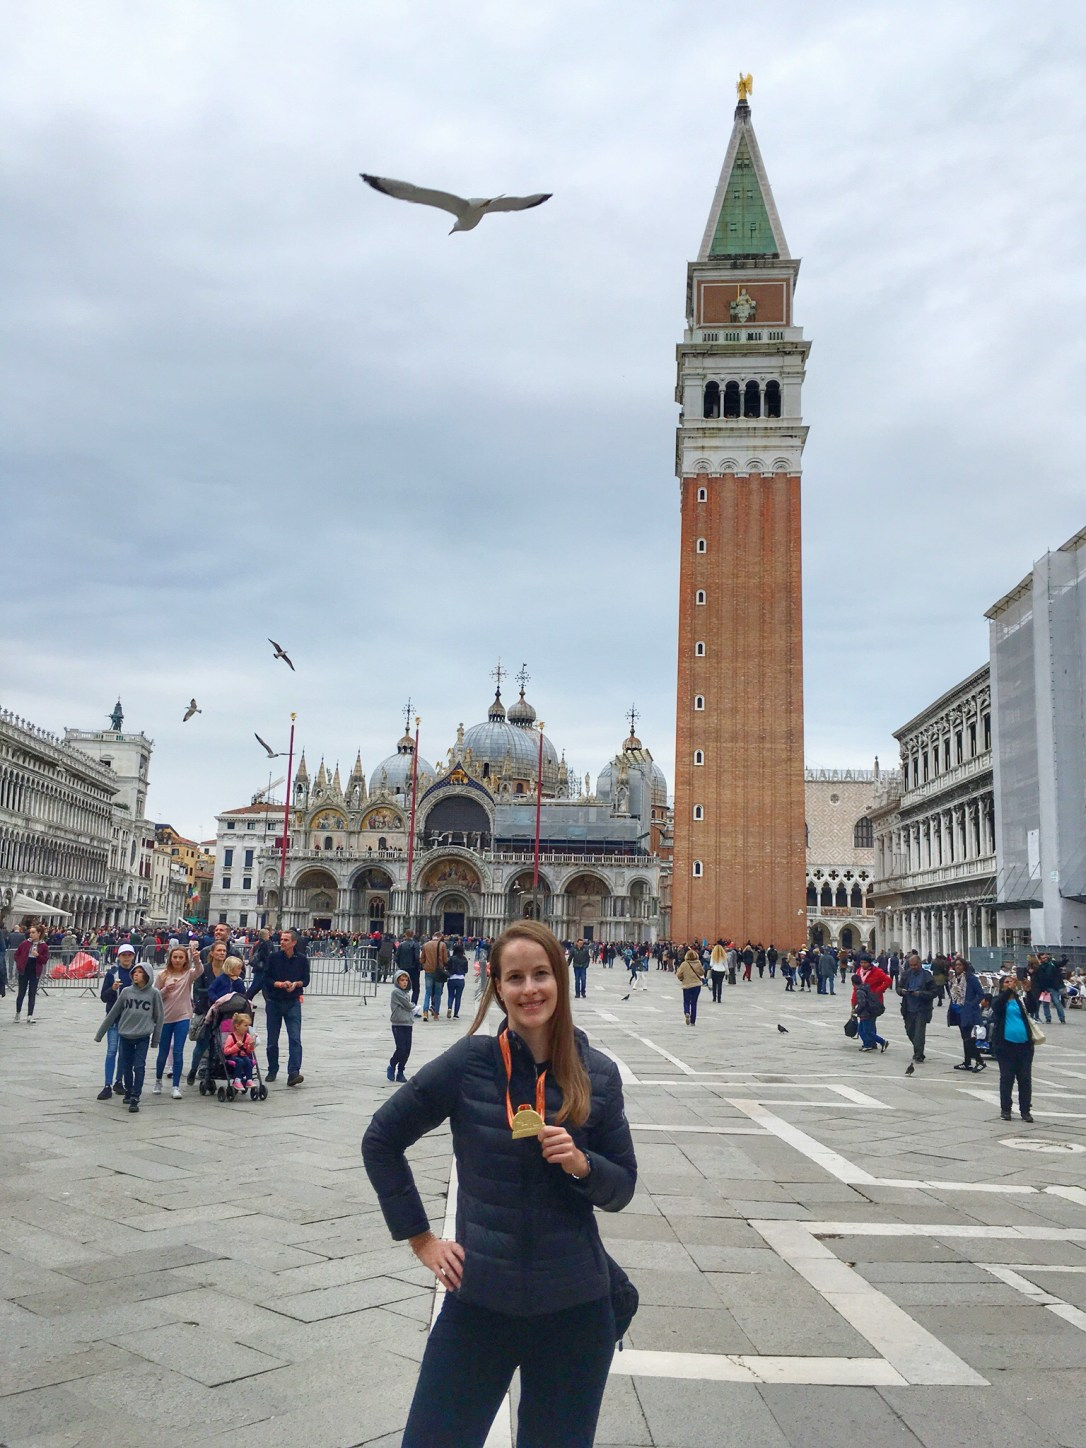 After Venice Marathon in Saint Mark's Square